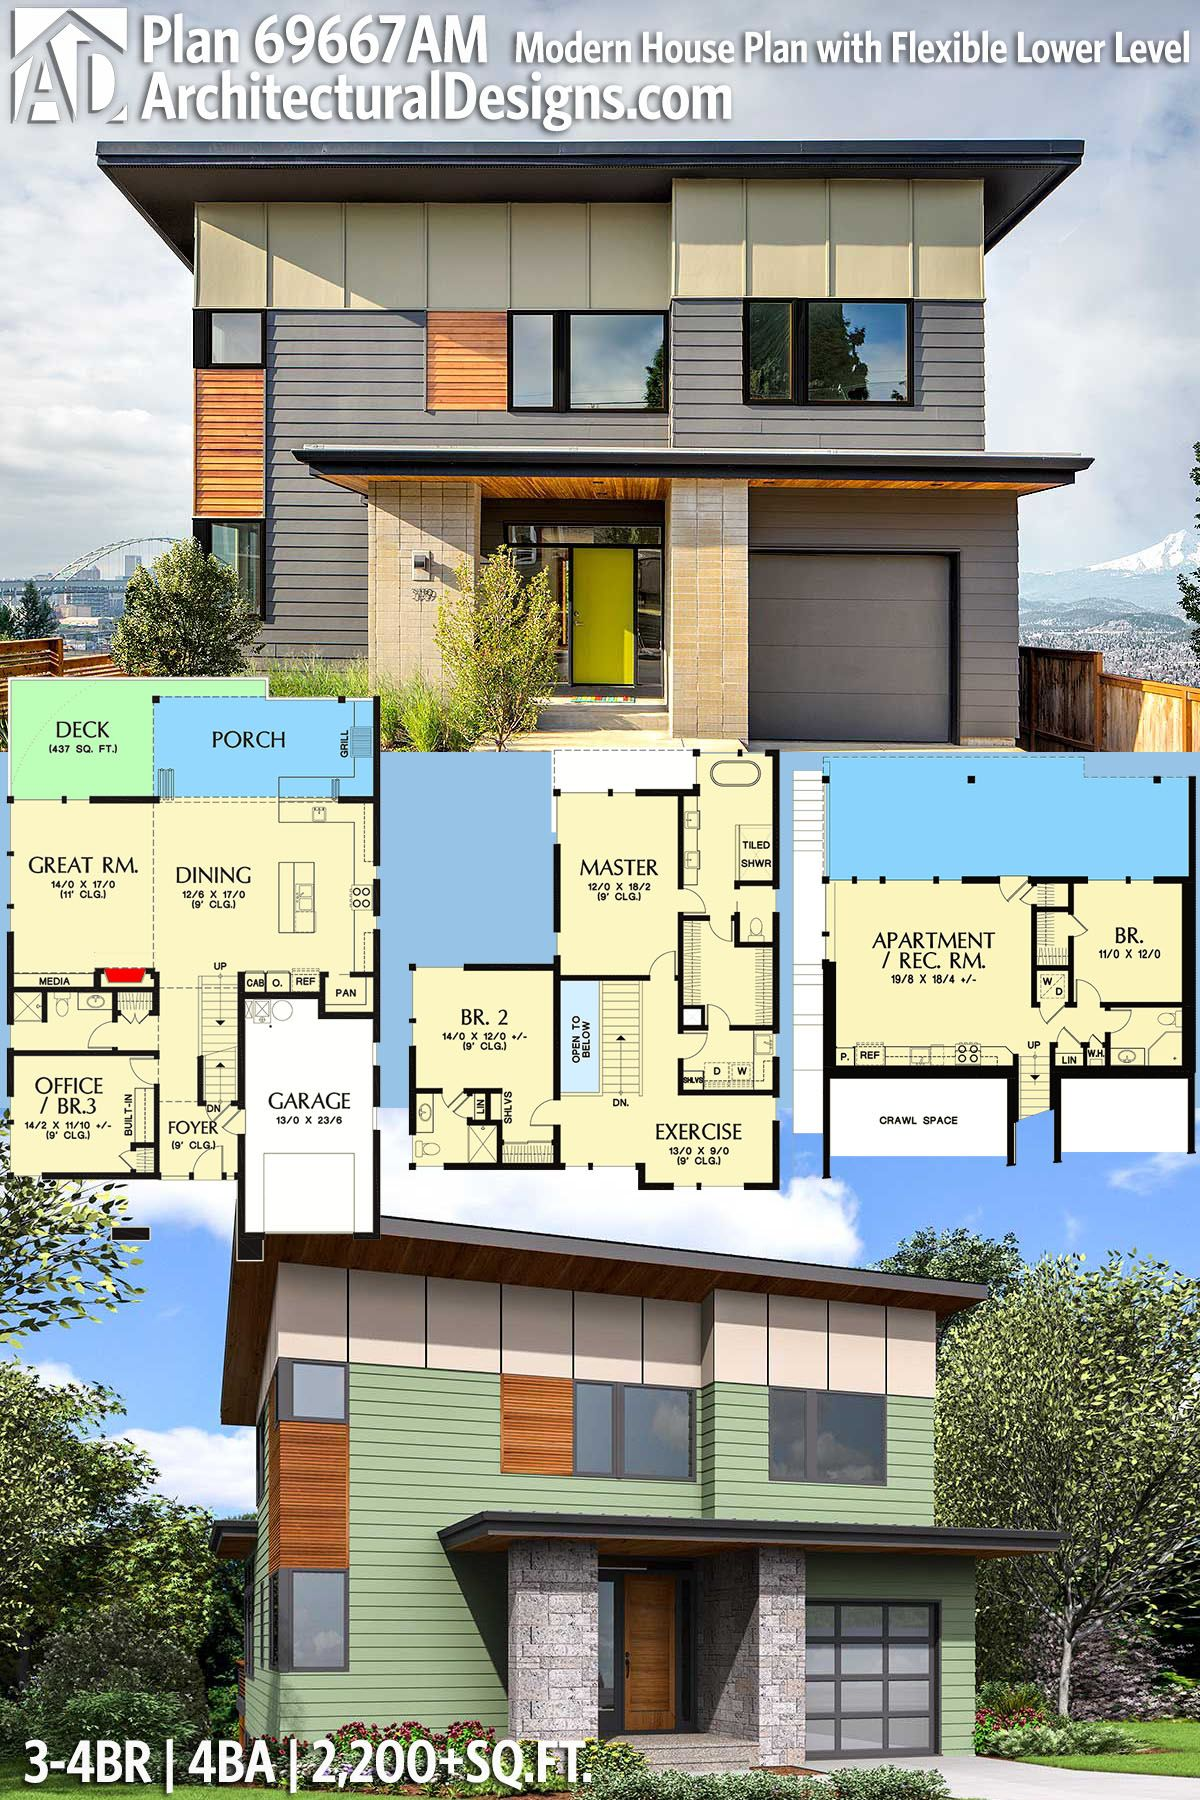 Architectural Designs House Plan 69667AM gives you